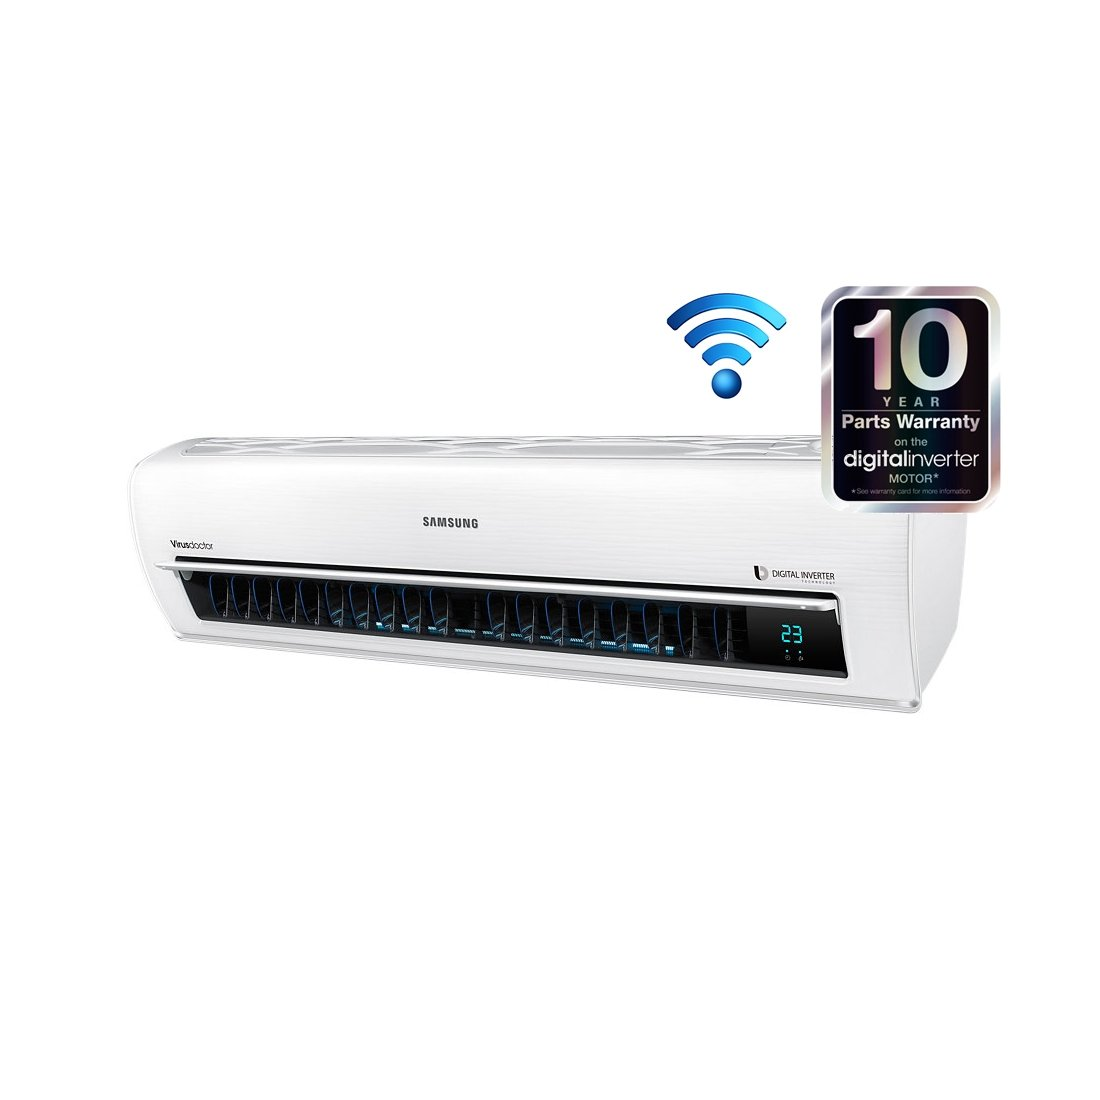 WiFi Inverter Installed Cool Wizard Air Conditioning and #0693C5